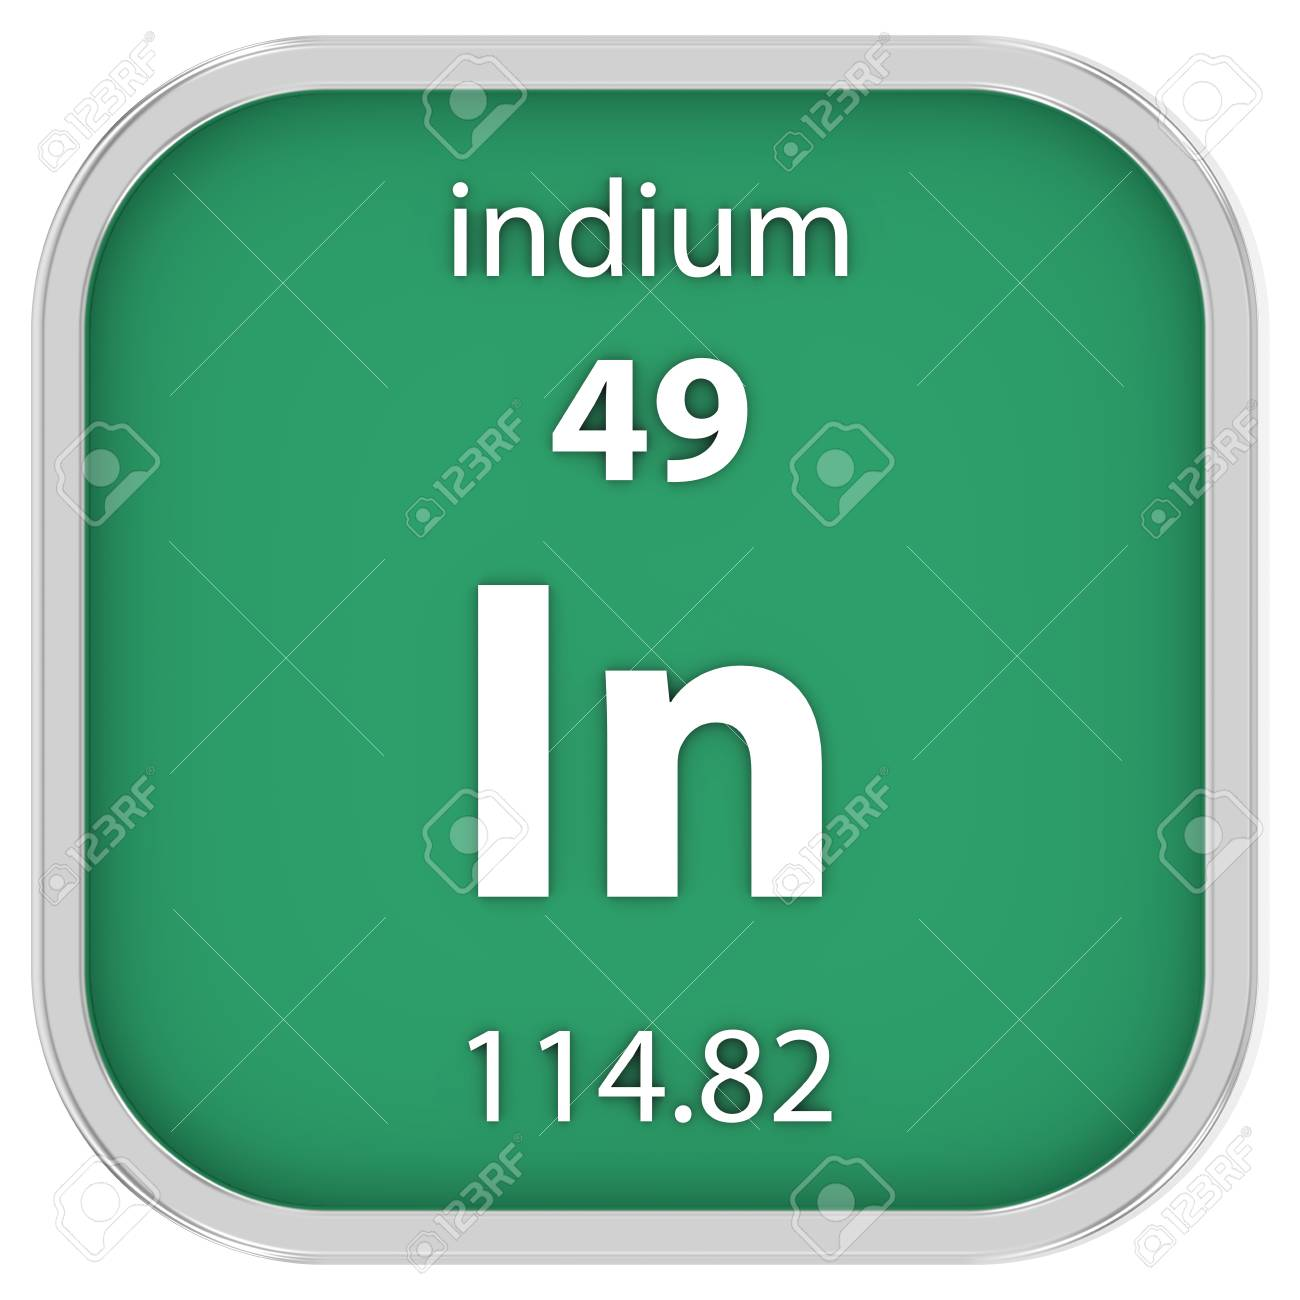 Indium on periodic table gallery periodic table images indium material on the periodic table stock photo picture and indium material on the periodic table gamestrikefo Image collections